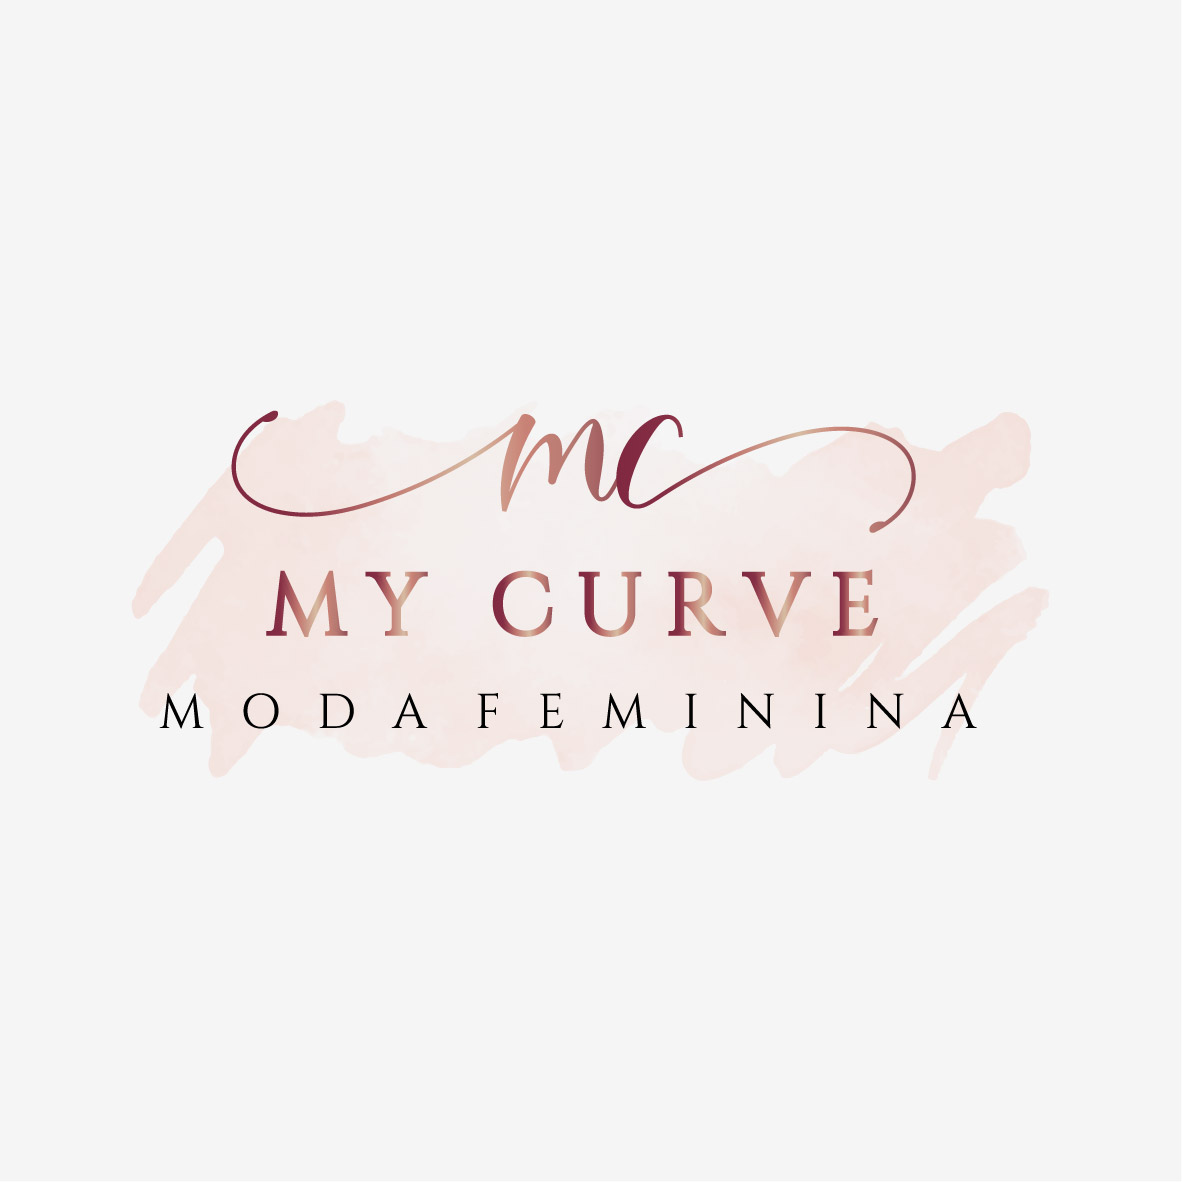 Logotipo My Curve